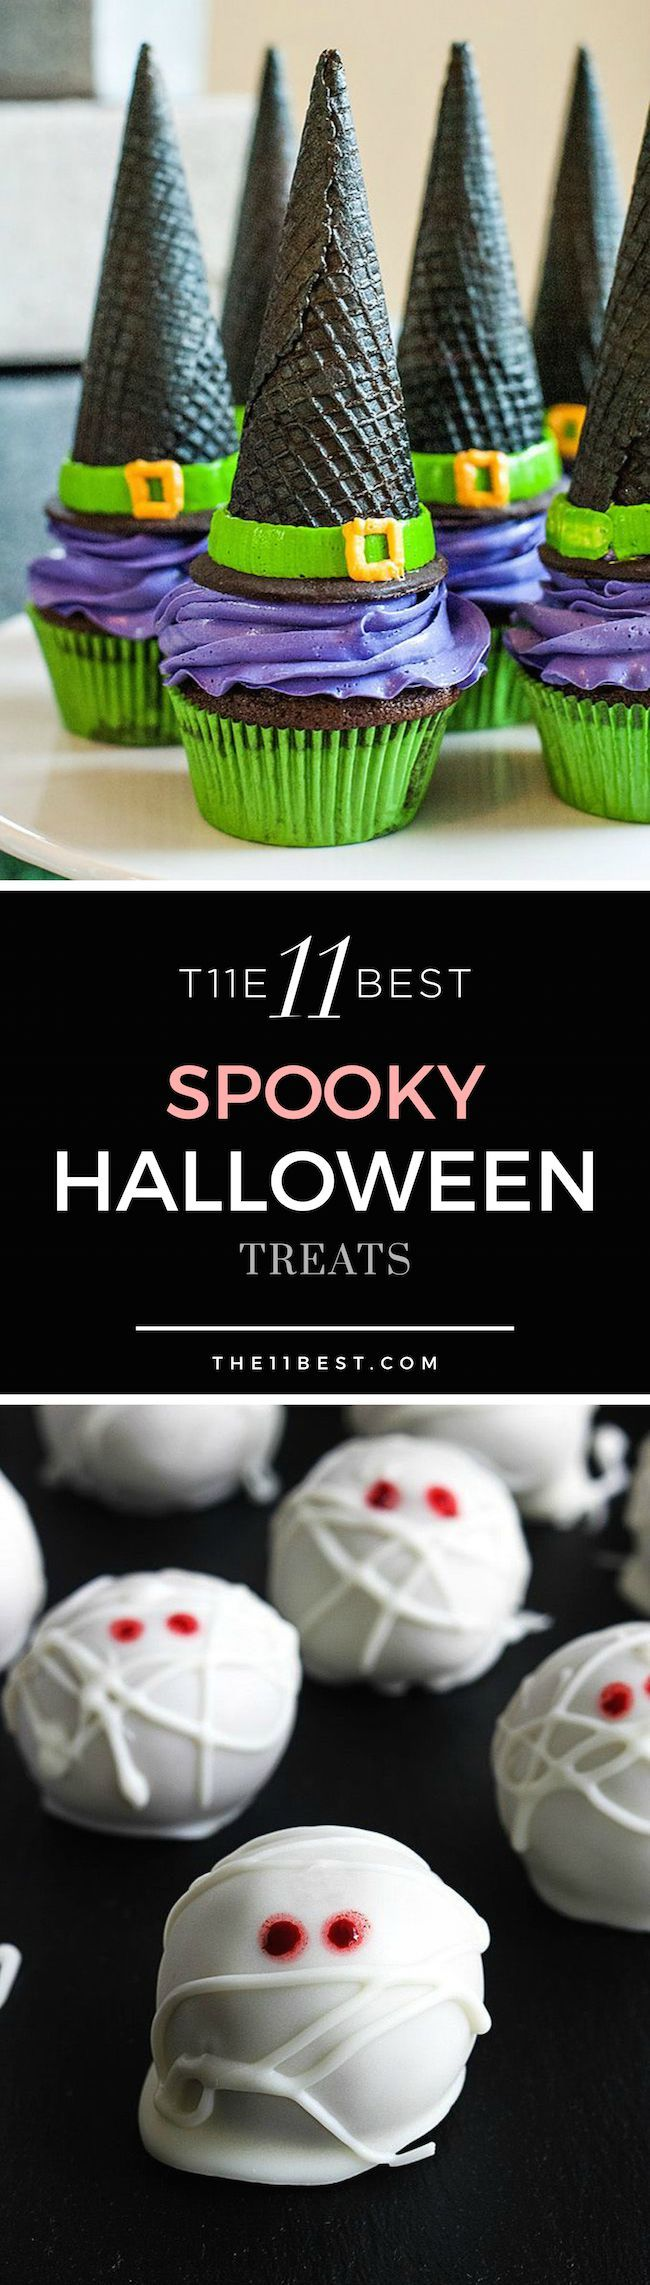 The 11 Best Spooky Halloween Treats and Dessert Ideas